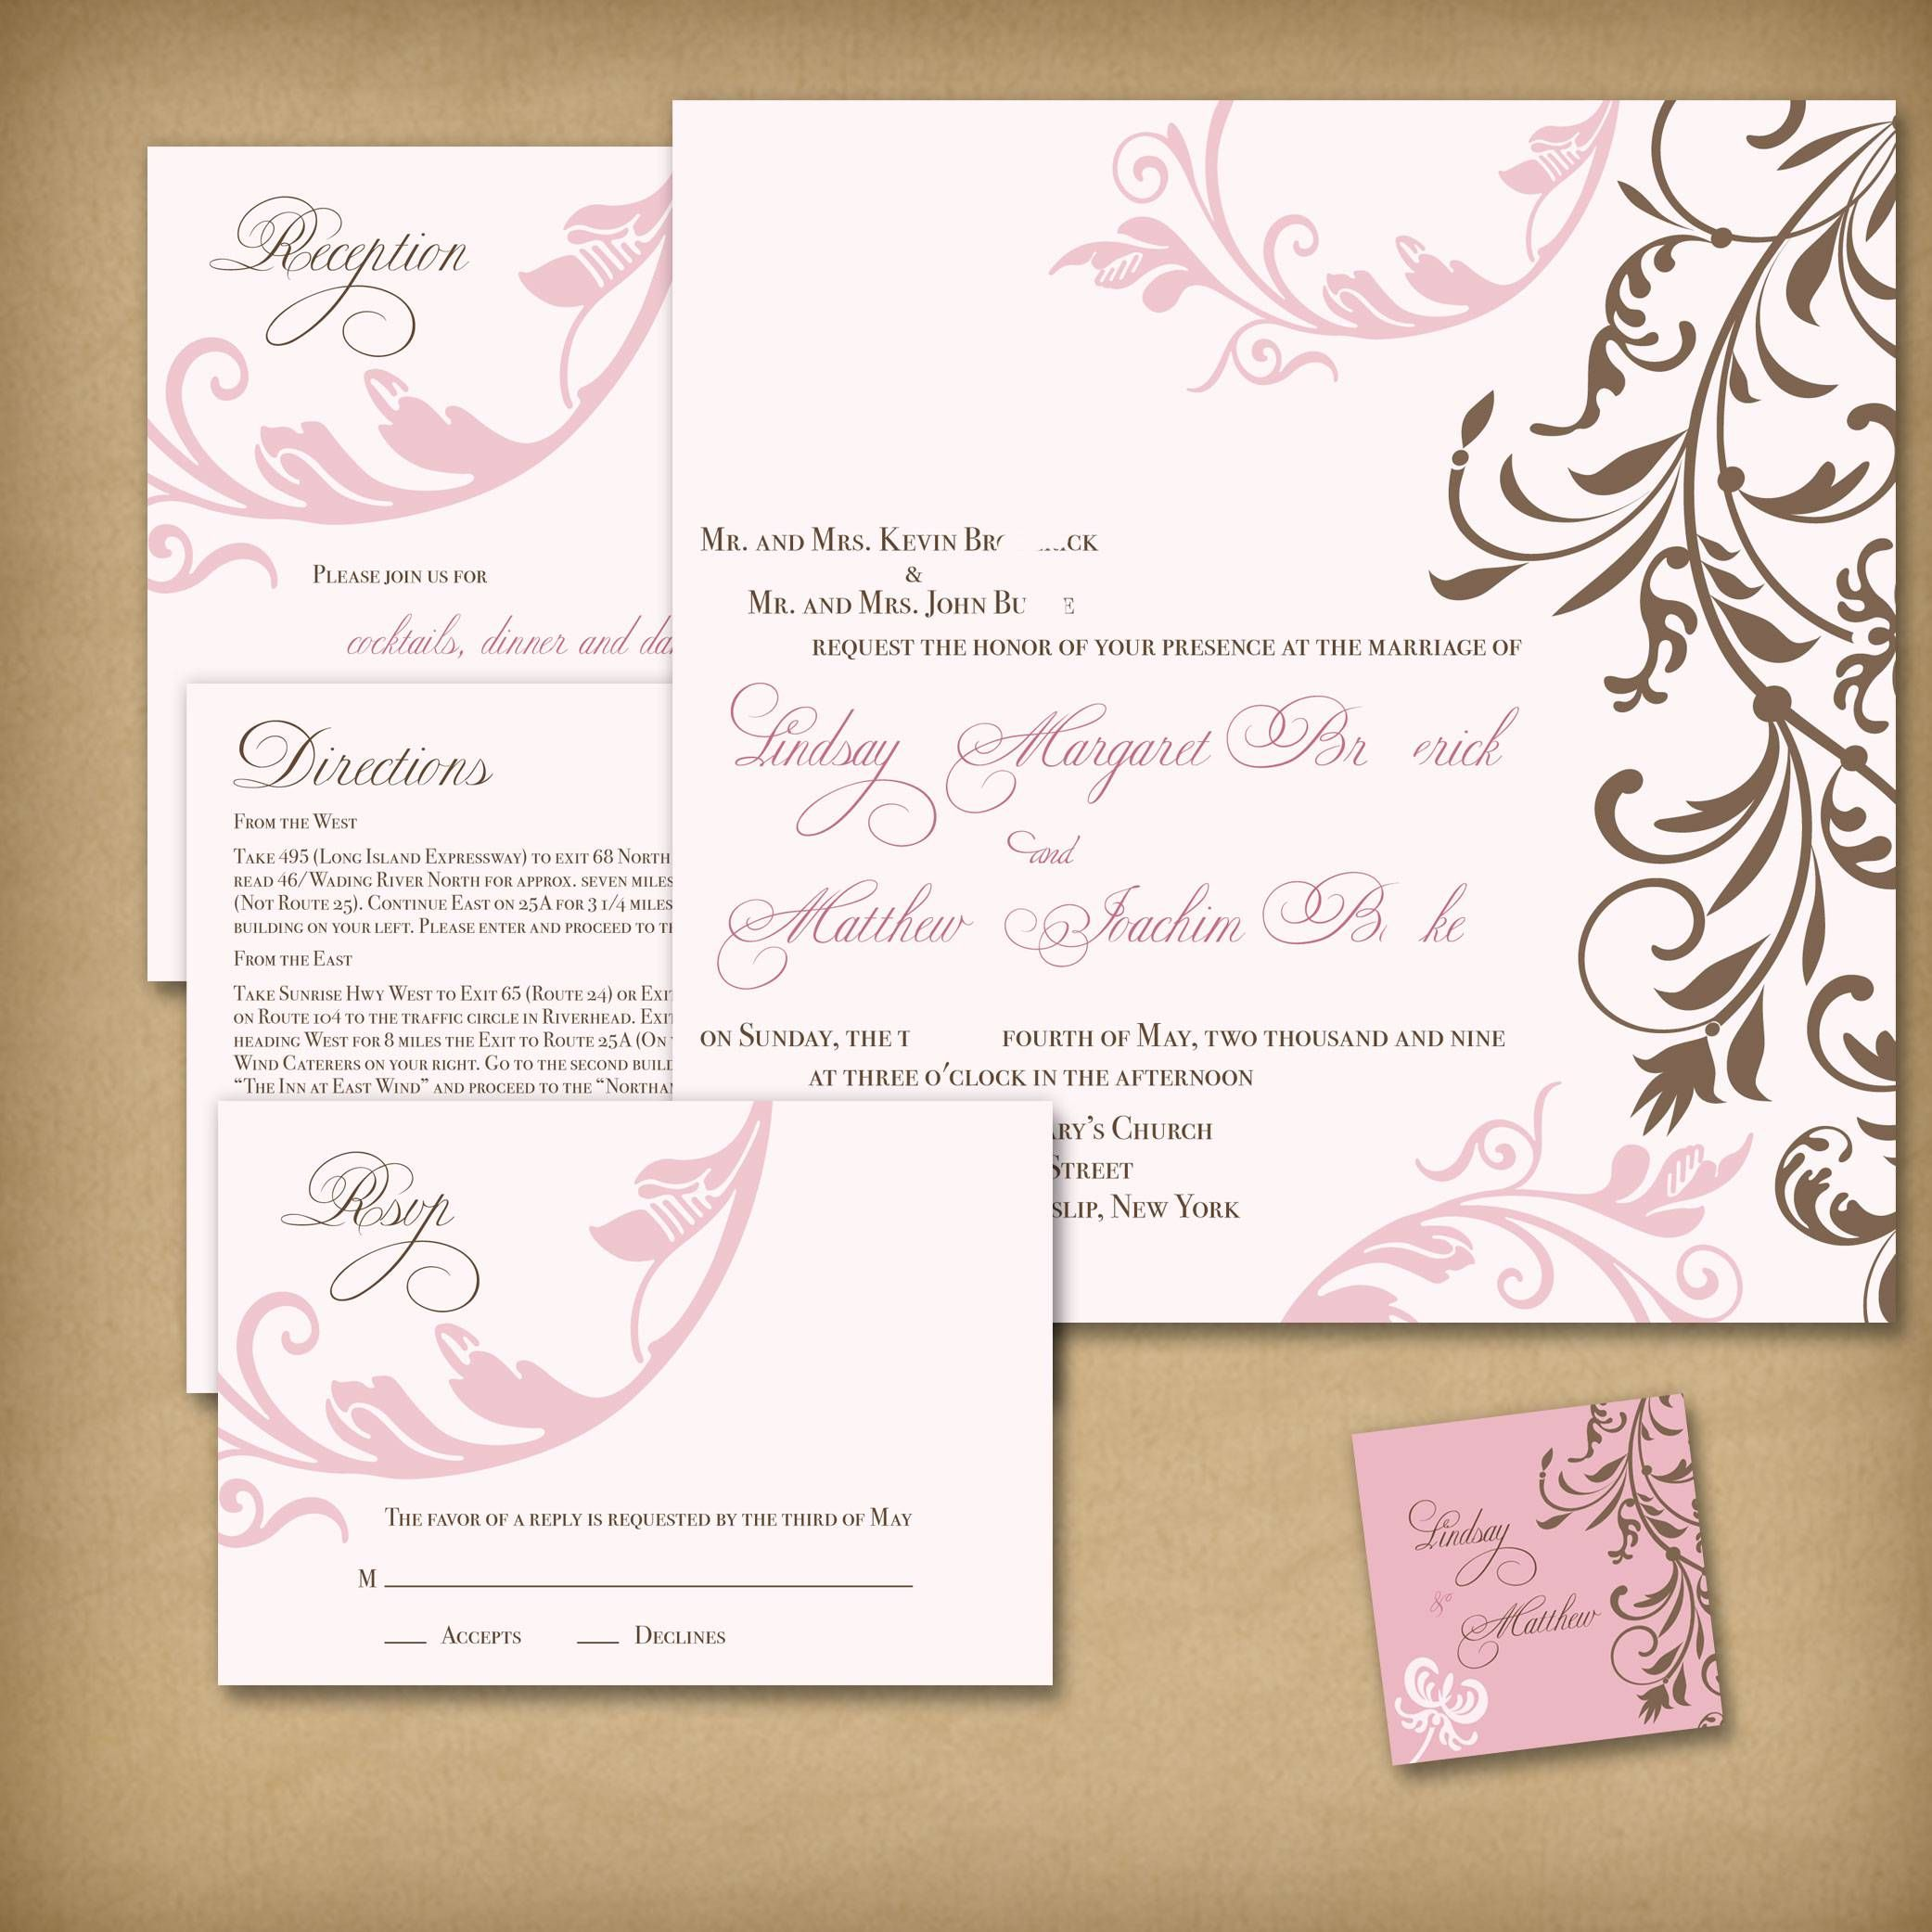 Invitation Template Word Impressive Wedding Invitation Templates  Wedding Invitation Templates Word .